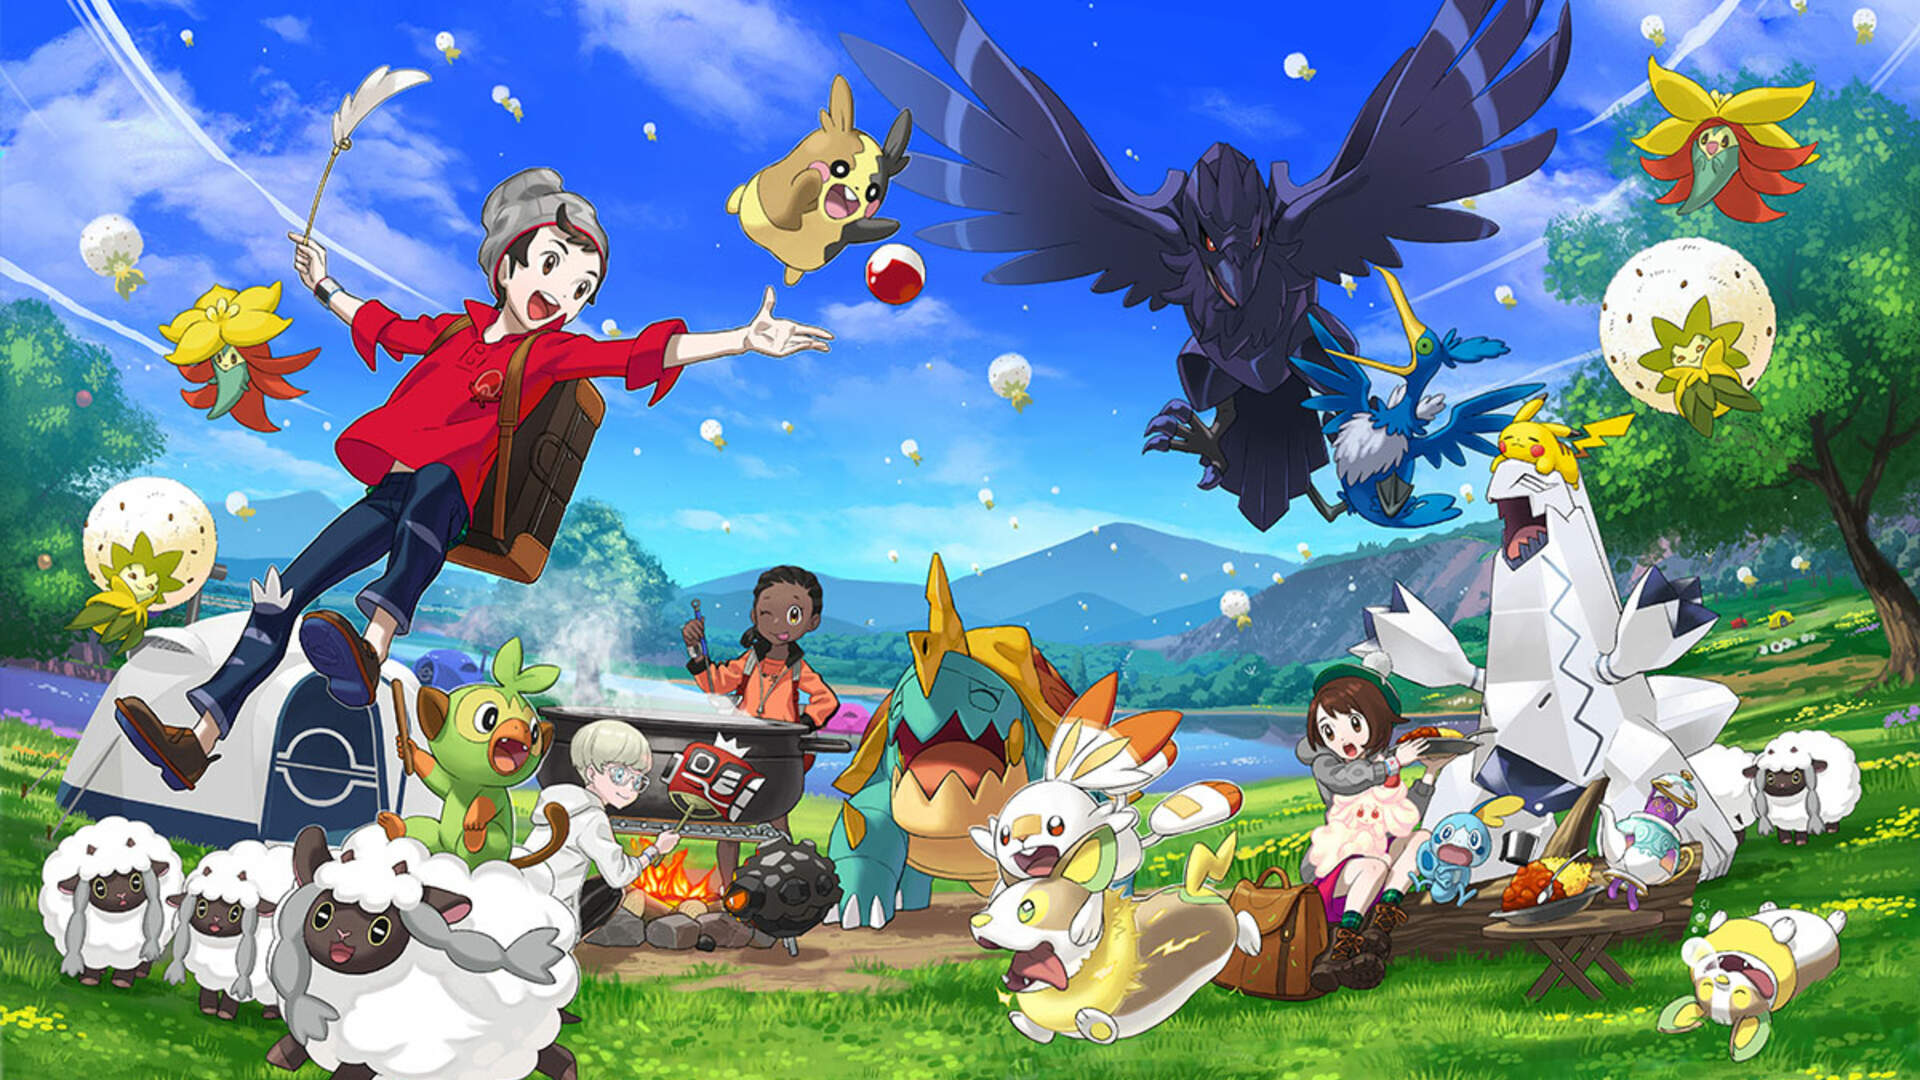 Pokemon Day 2020 Will Provide Our First Look at a New Mythical Pokemon for Sword and Shield